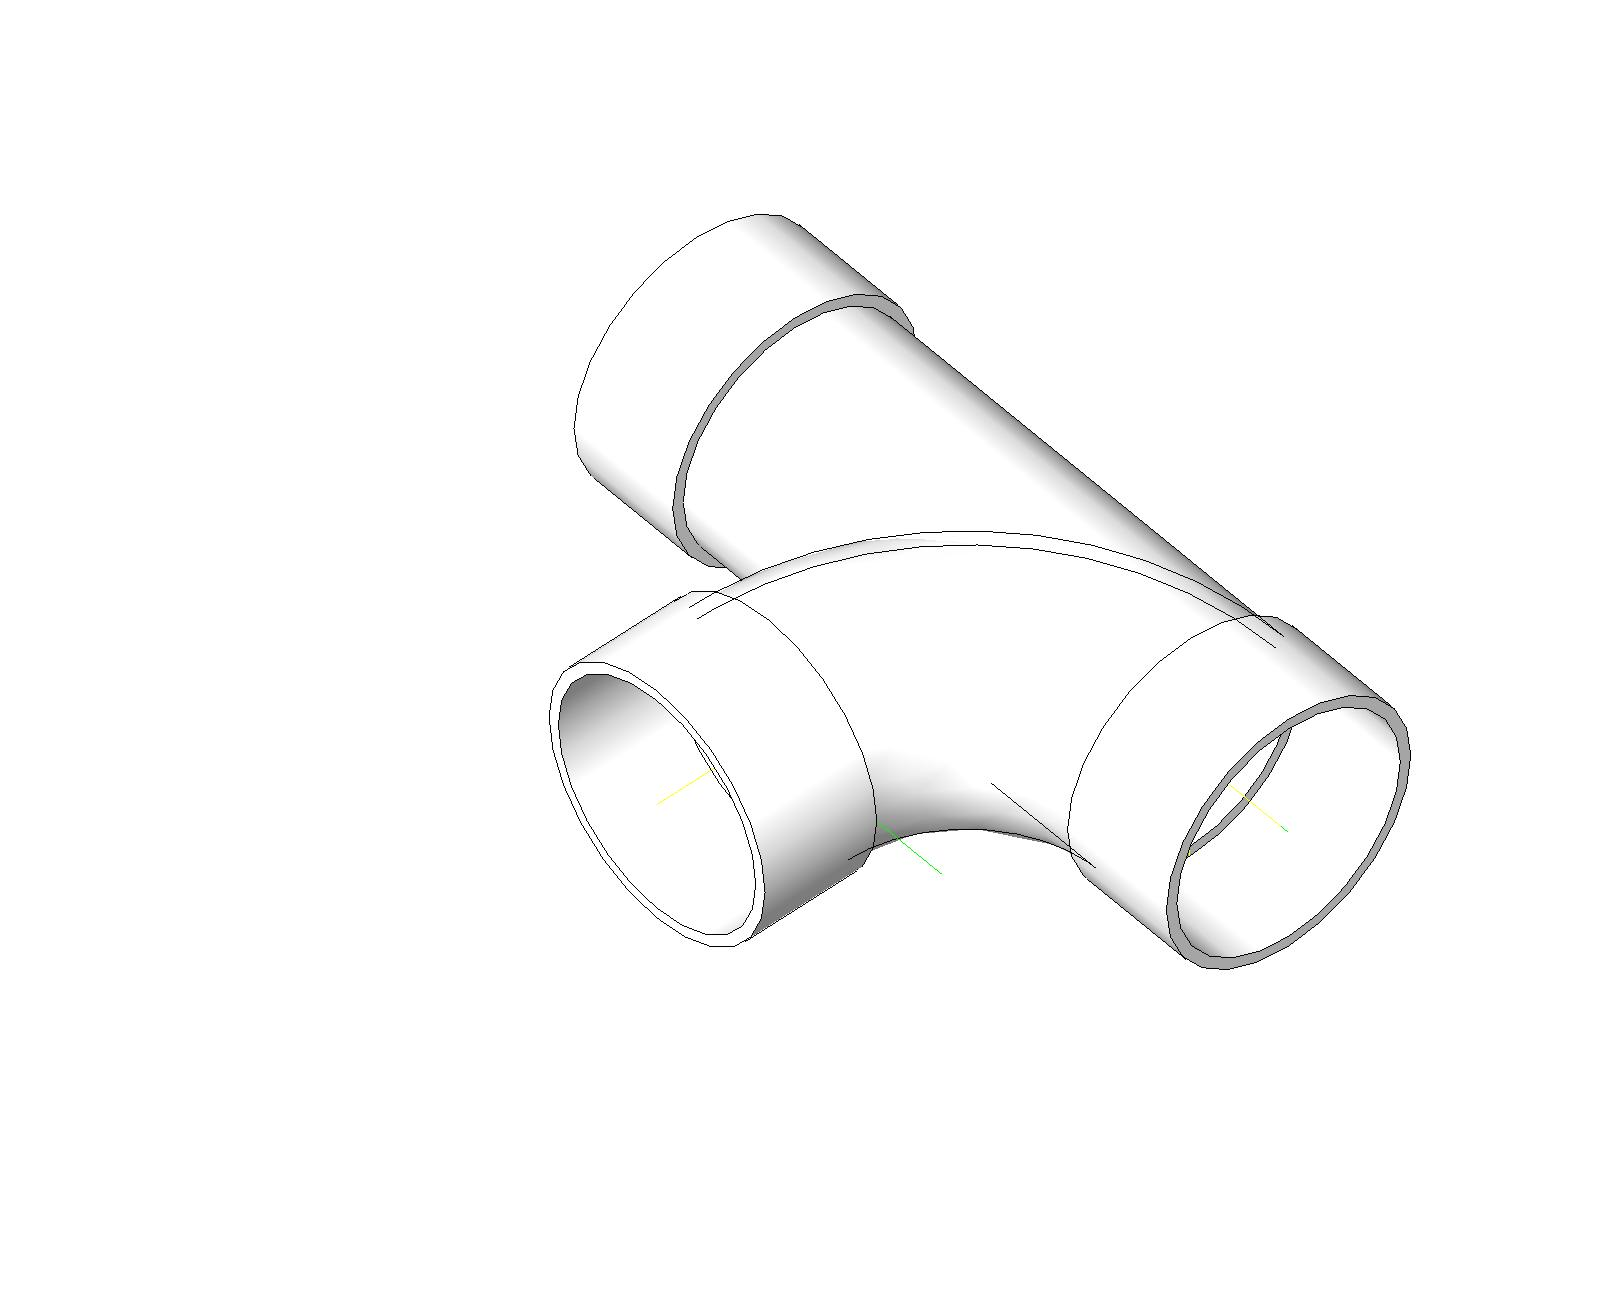 pipe fittings cad